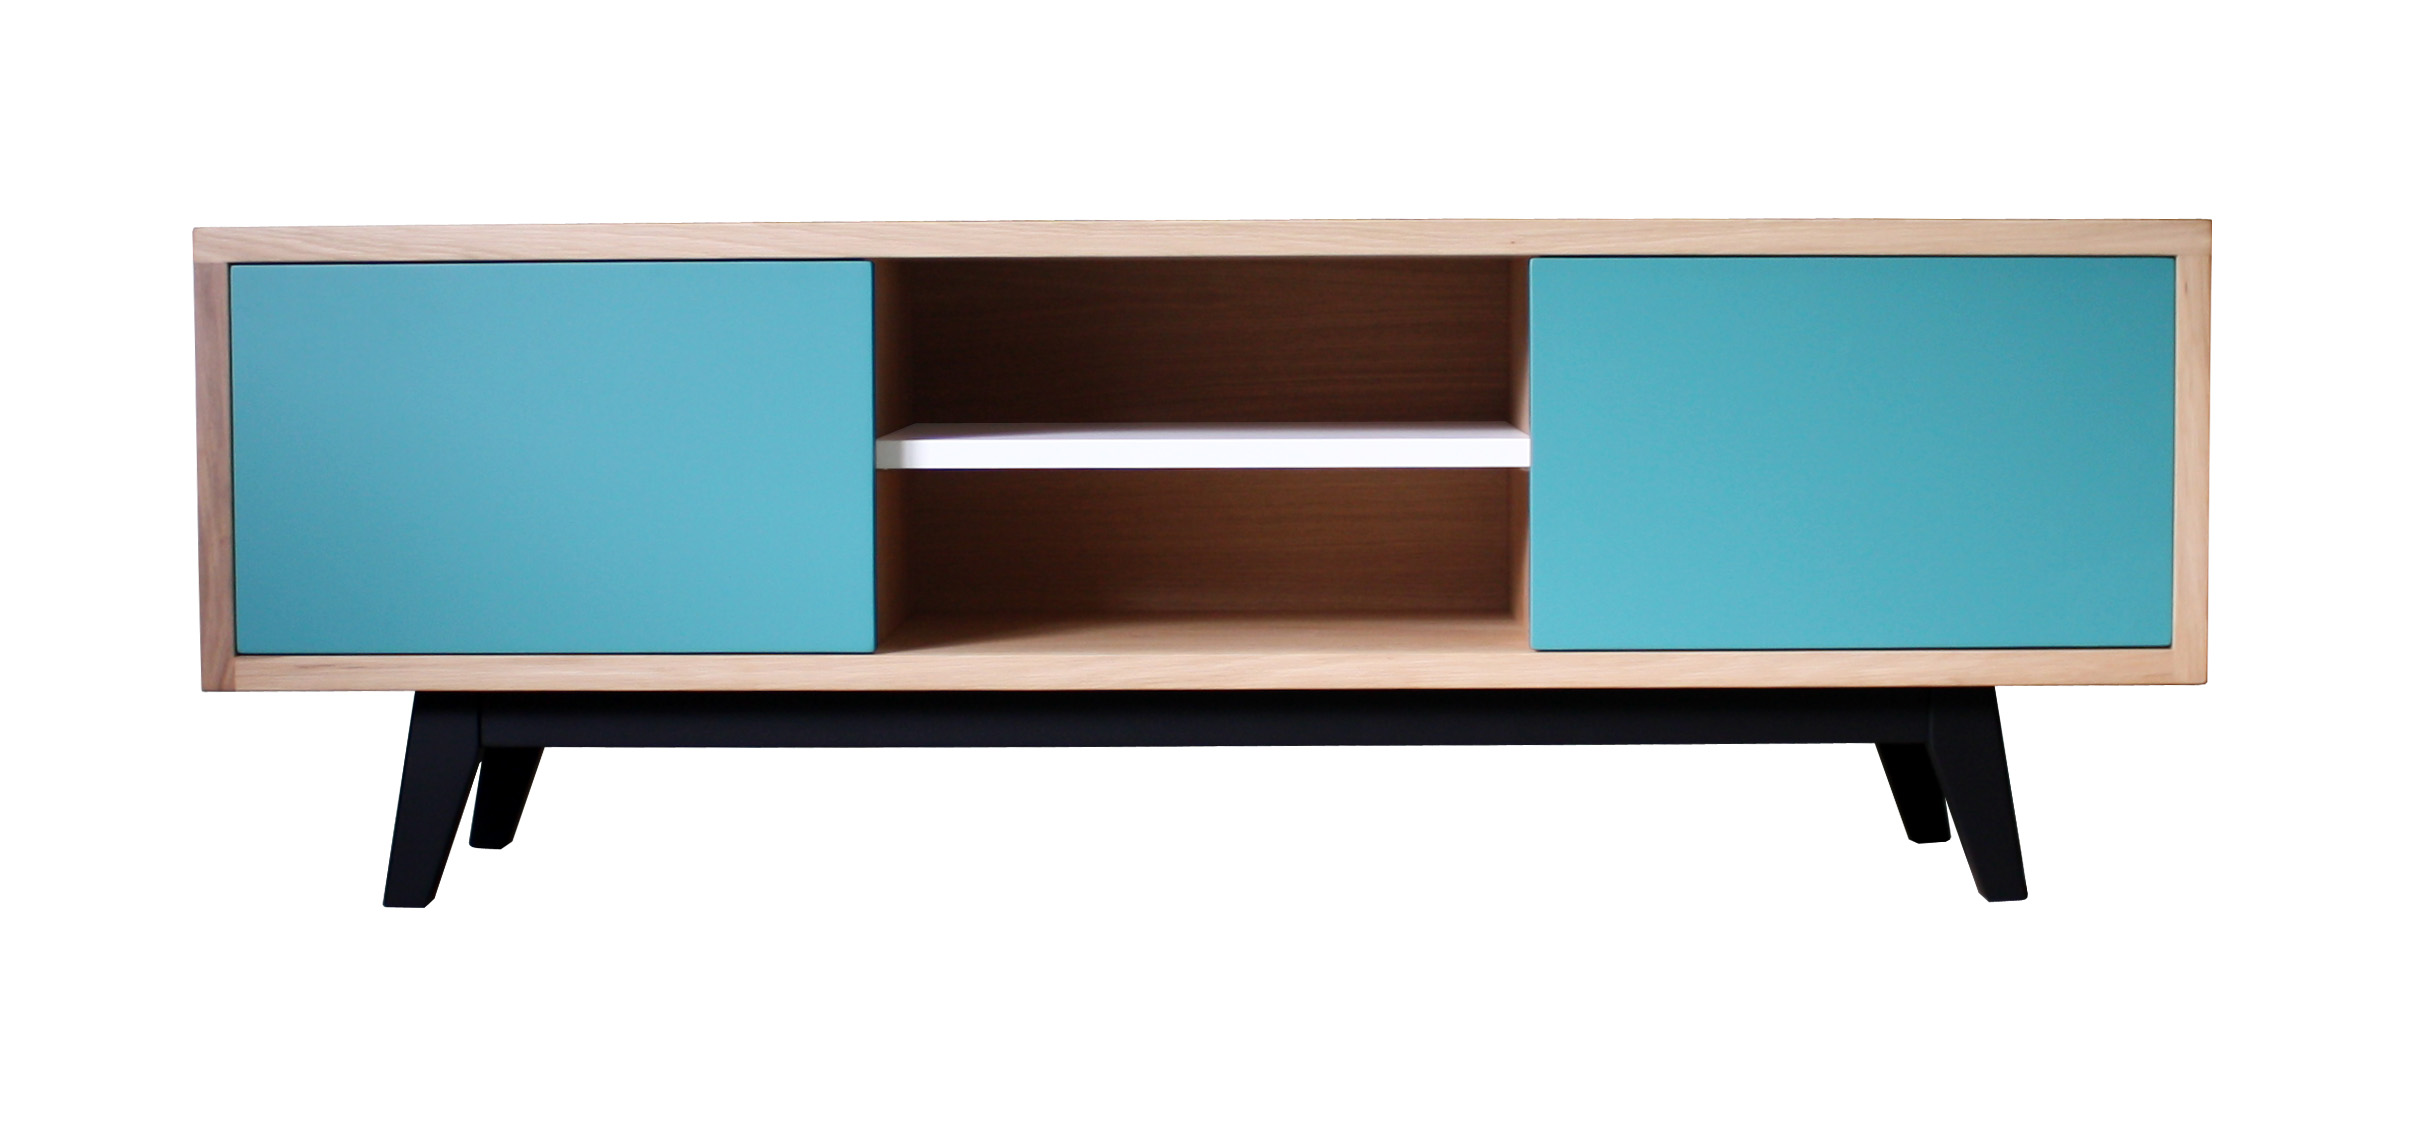 table basse scandinave bleu canard sammlung. Black Bedroom Furniture Sets. Home Design Ideas